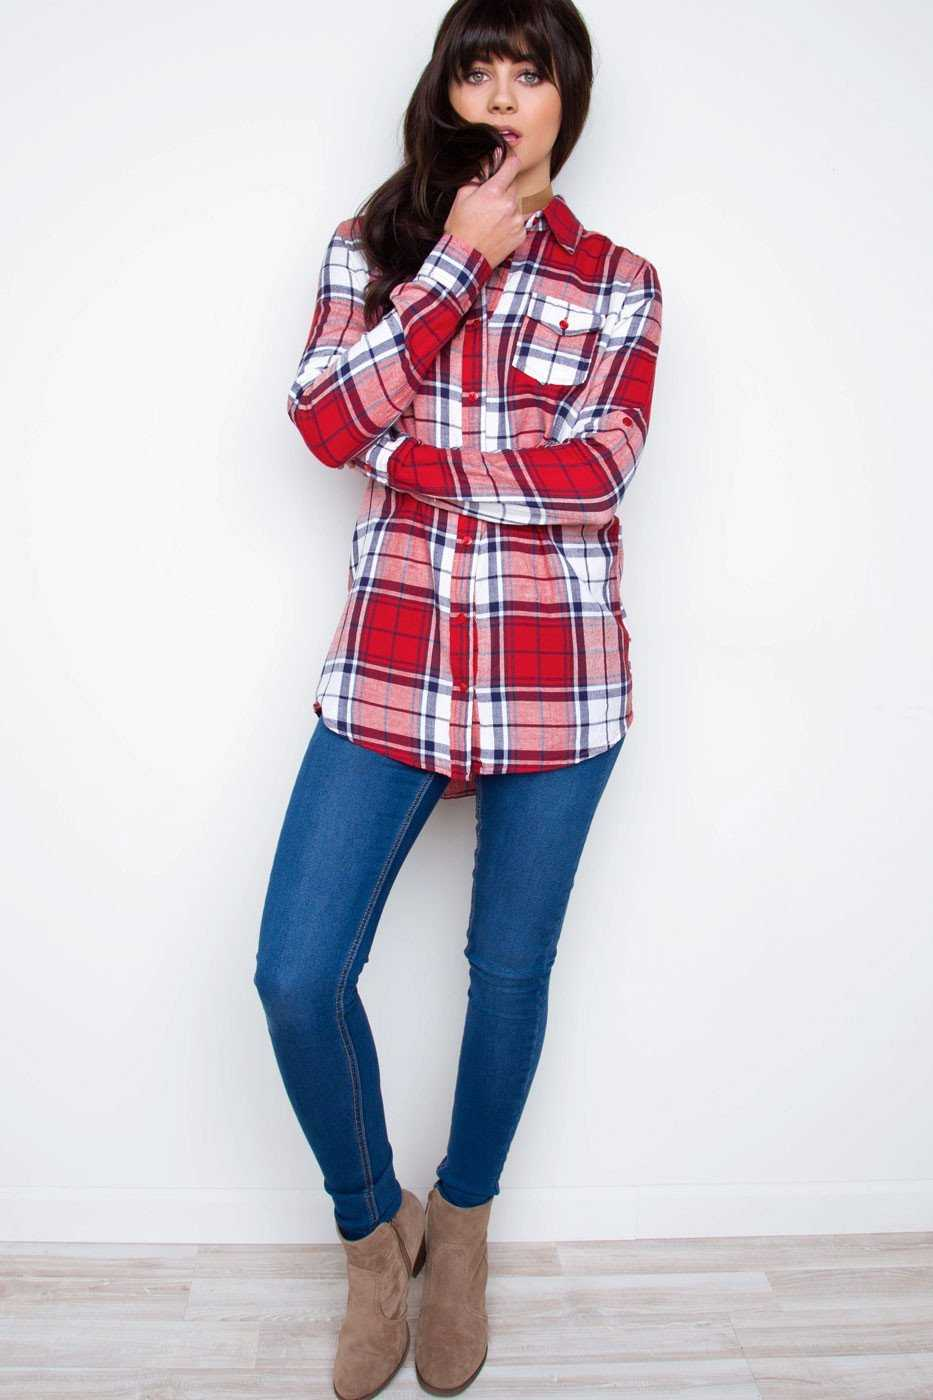 Tops - Up My Sleeves Plaid Top